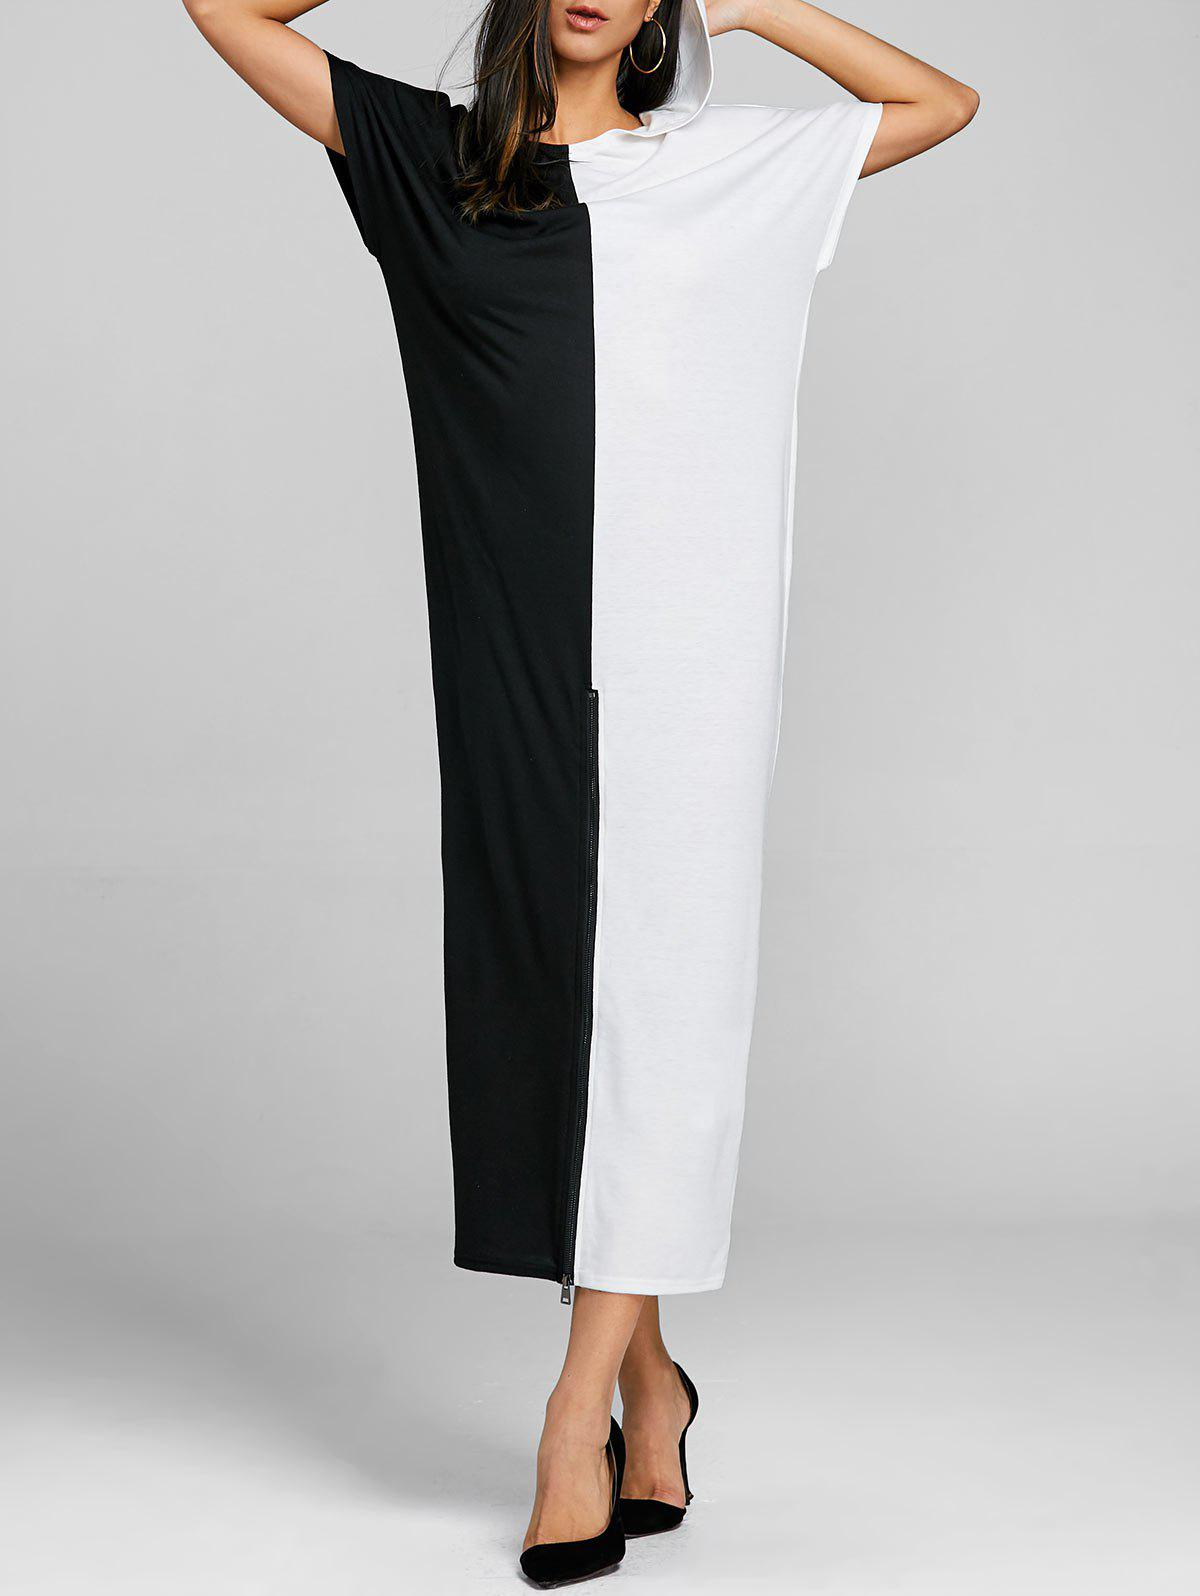 High Split Color Block Maxi Dress - WHITE/BLACK L